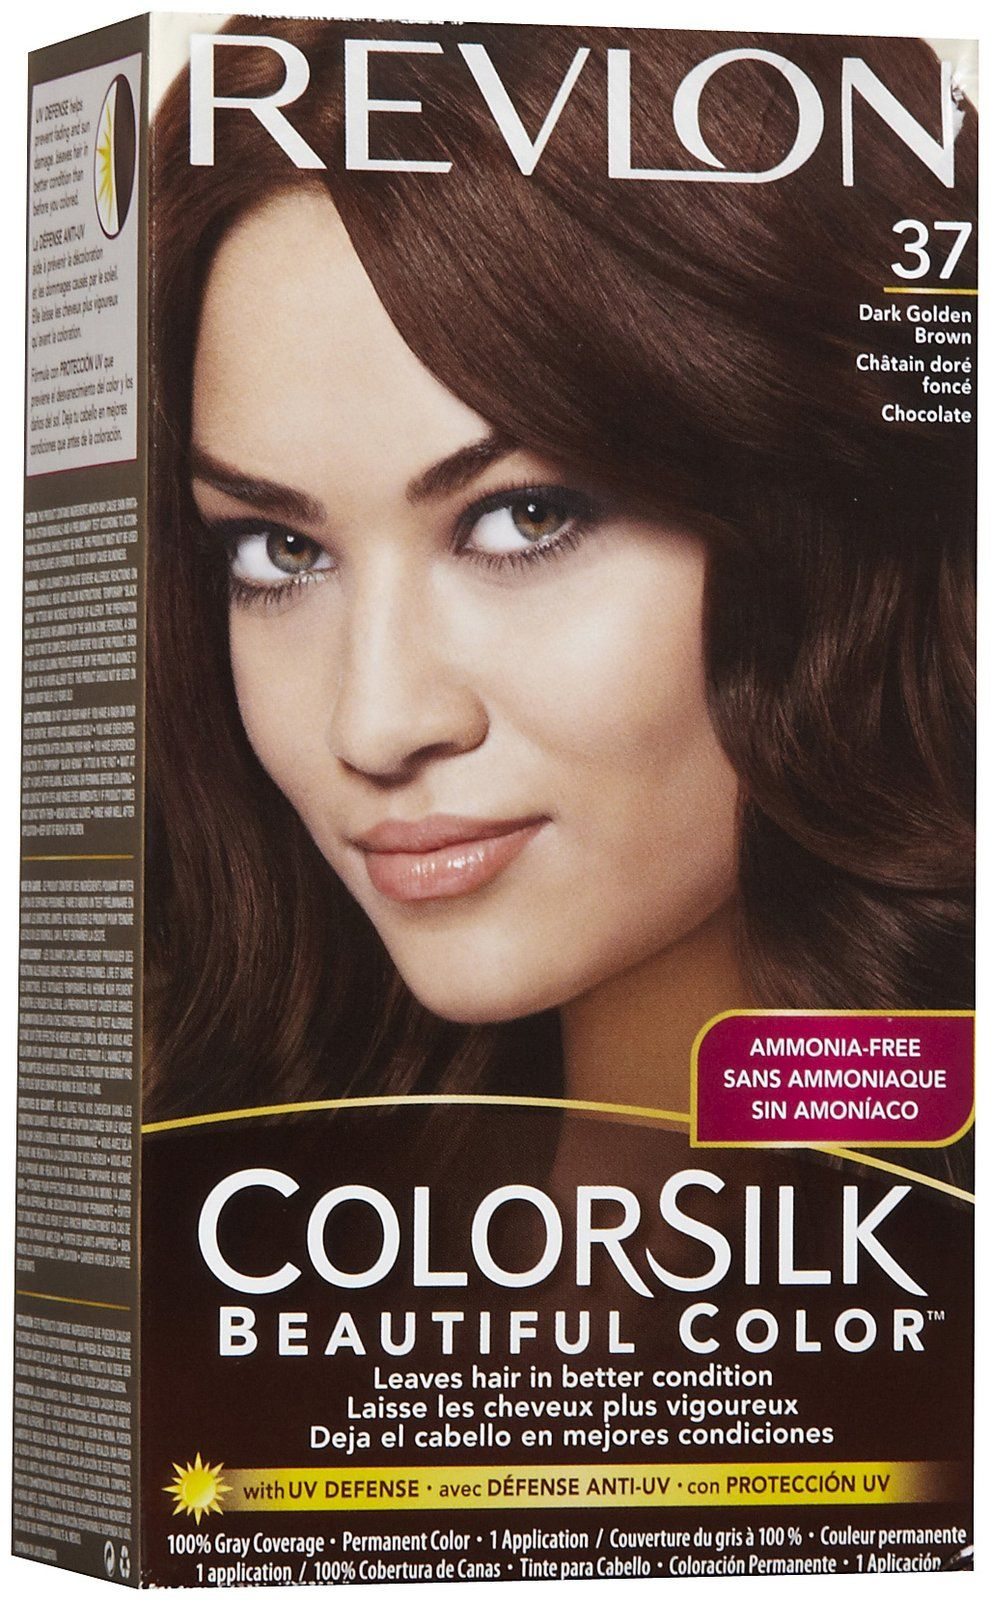 Revlon Colorsilk Haircolor It Costs Around 300 Full Price At